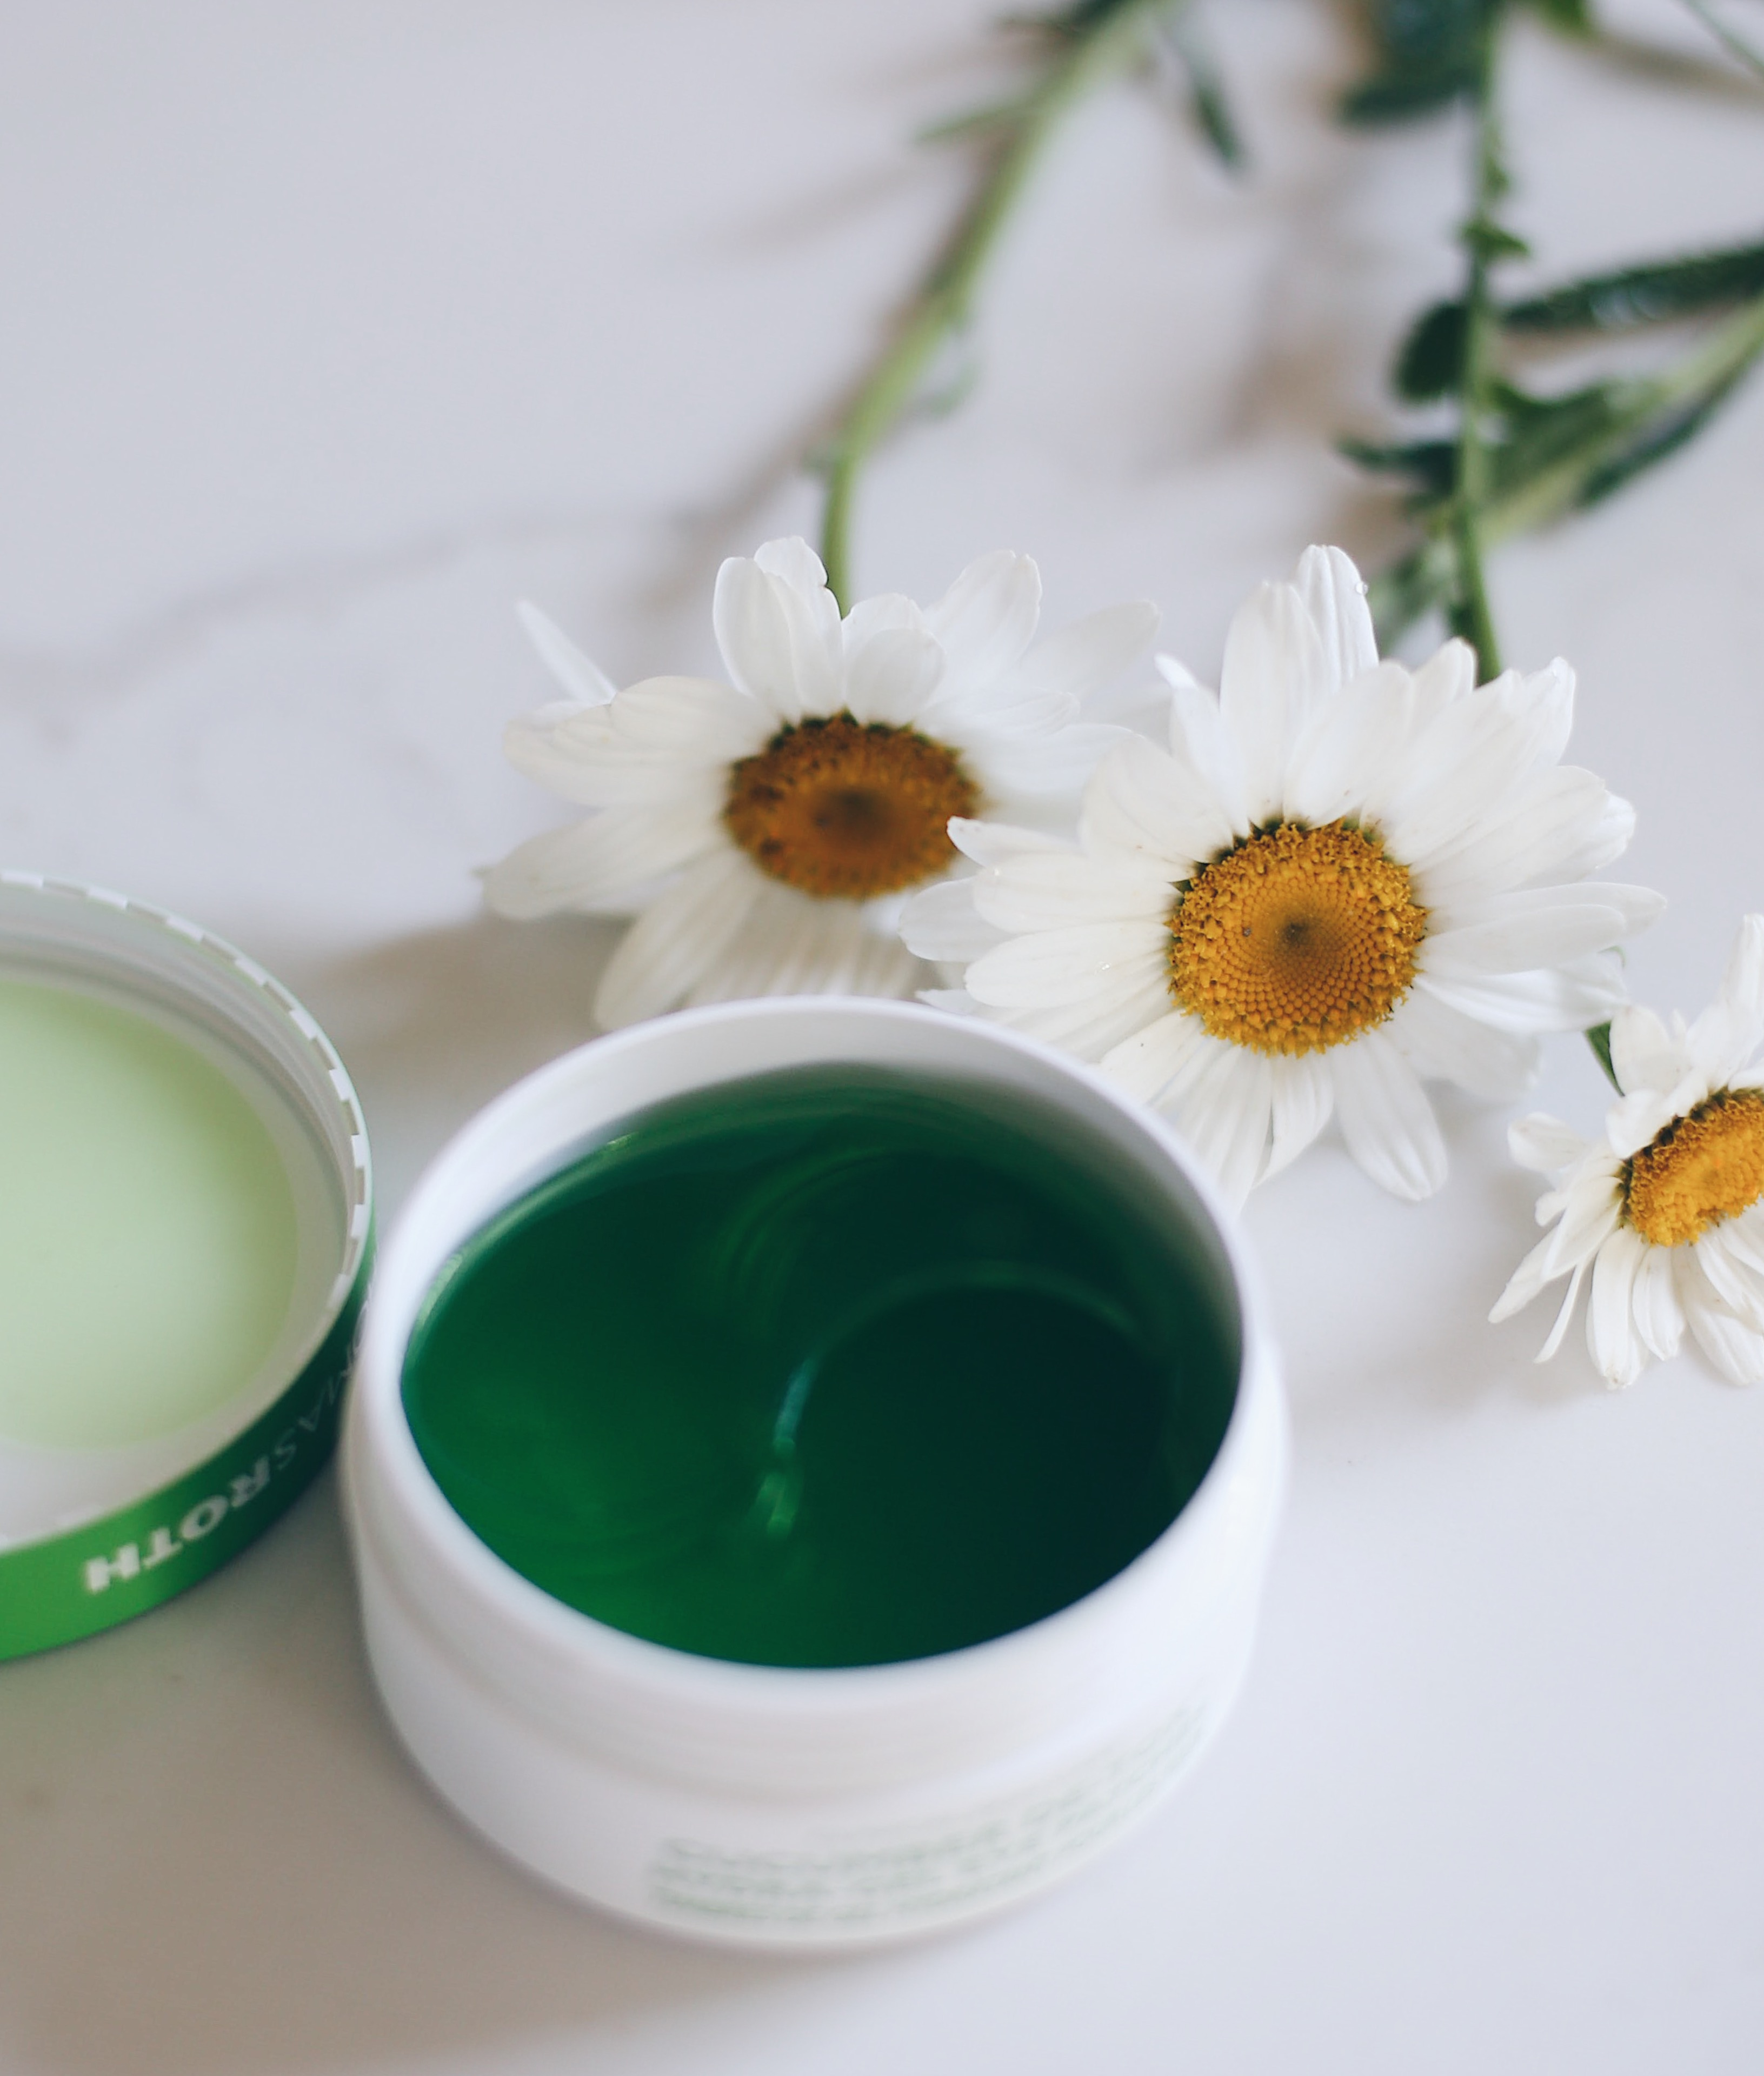 Peter Thomas Roth Cucumber Eye Patches